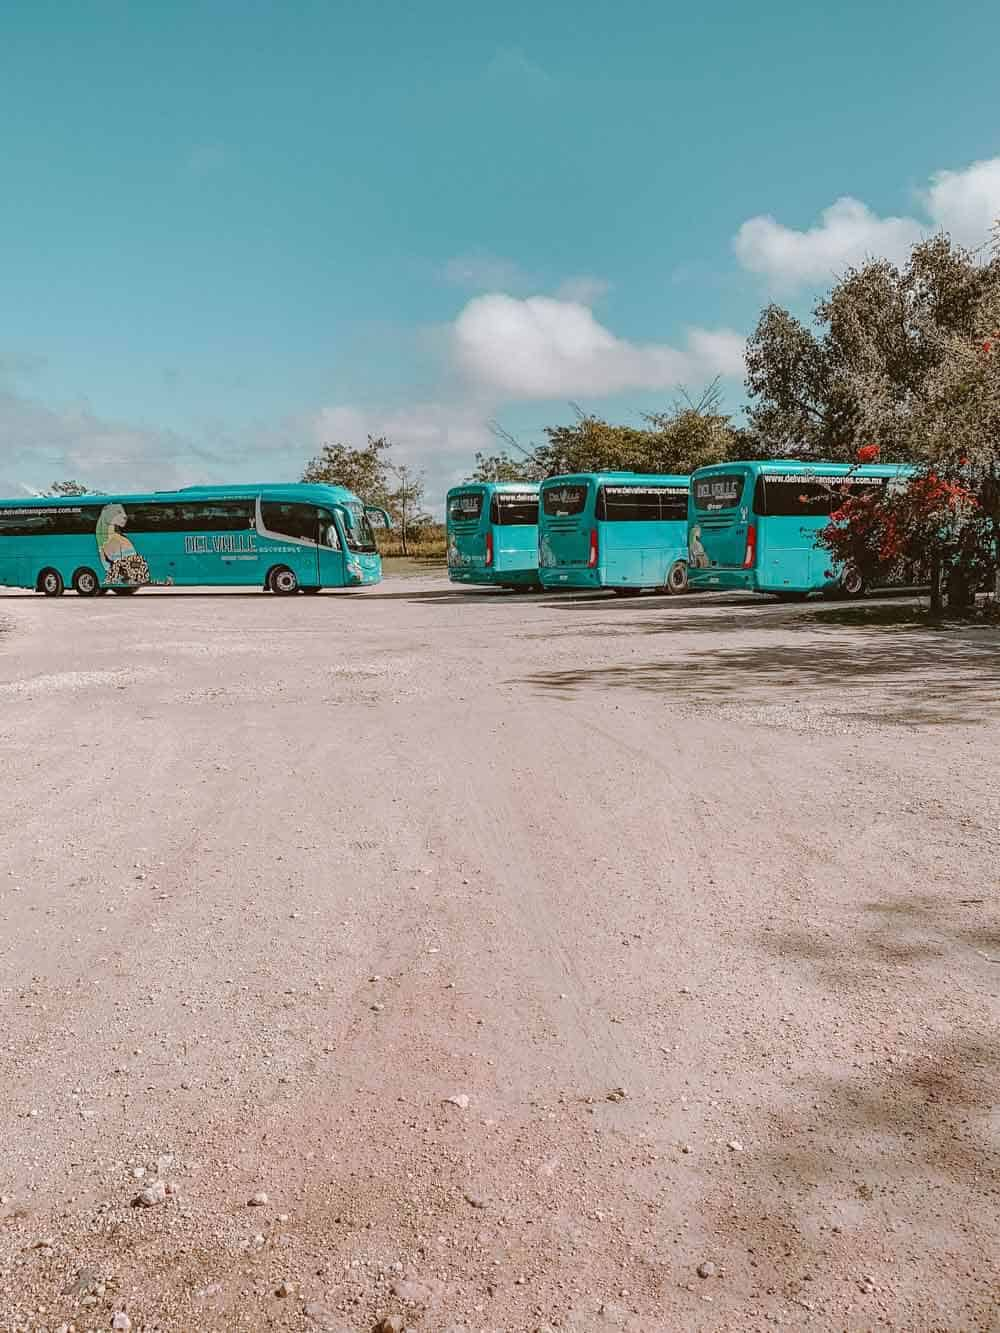 Tour buses at Cenote Suytun